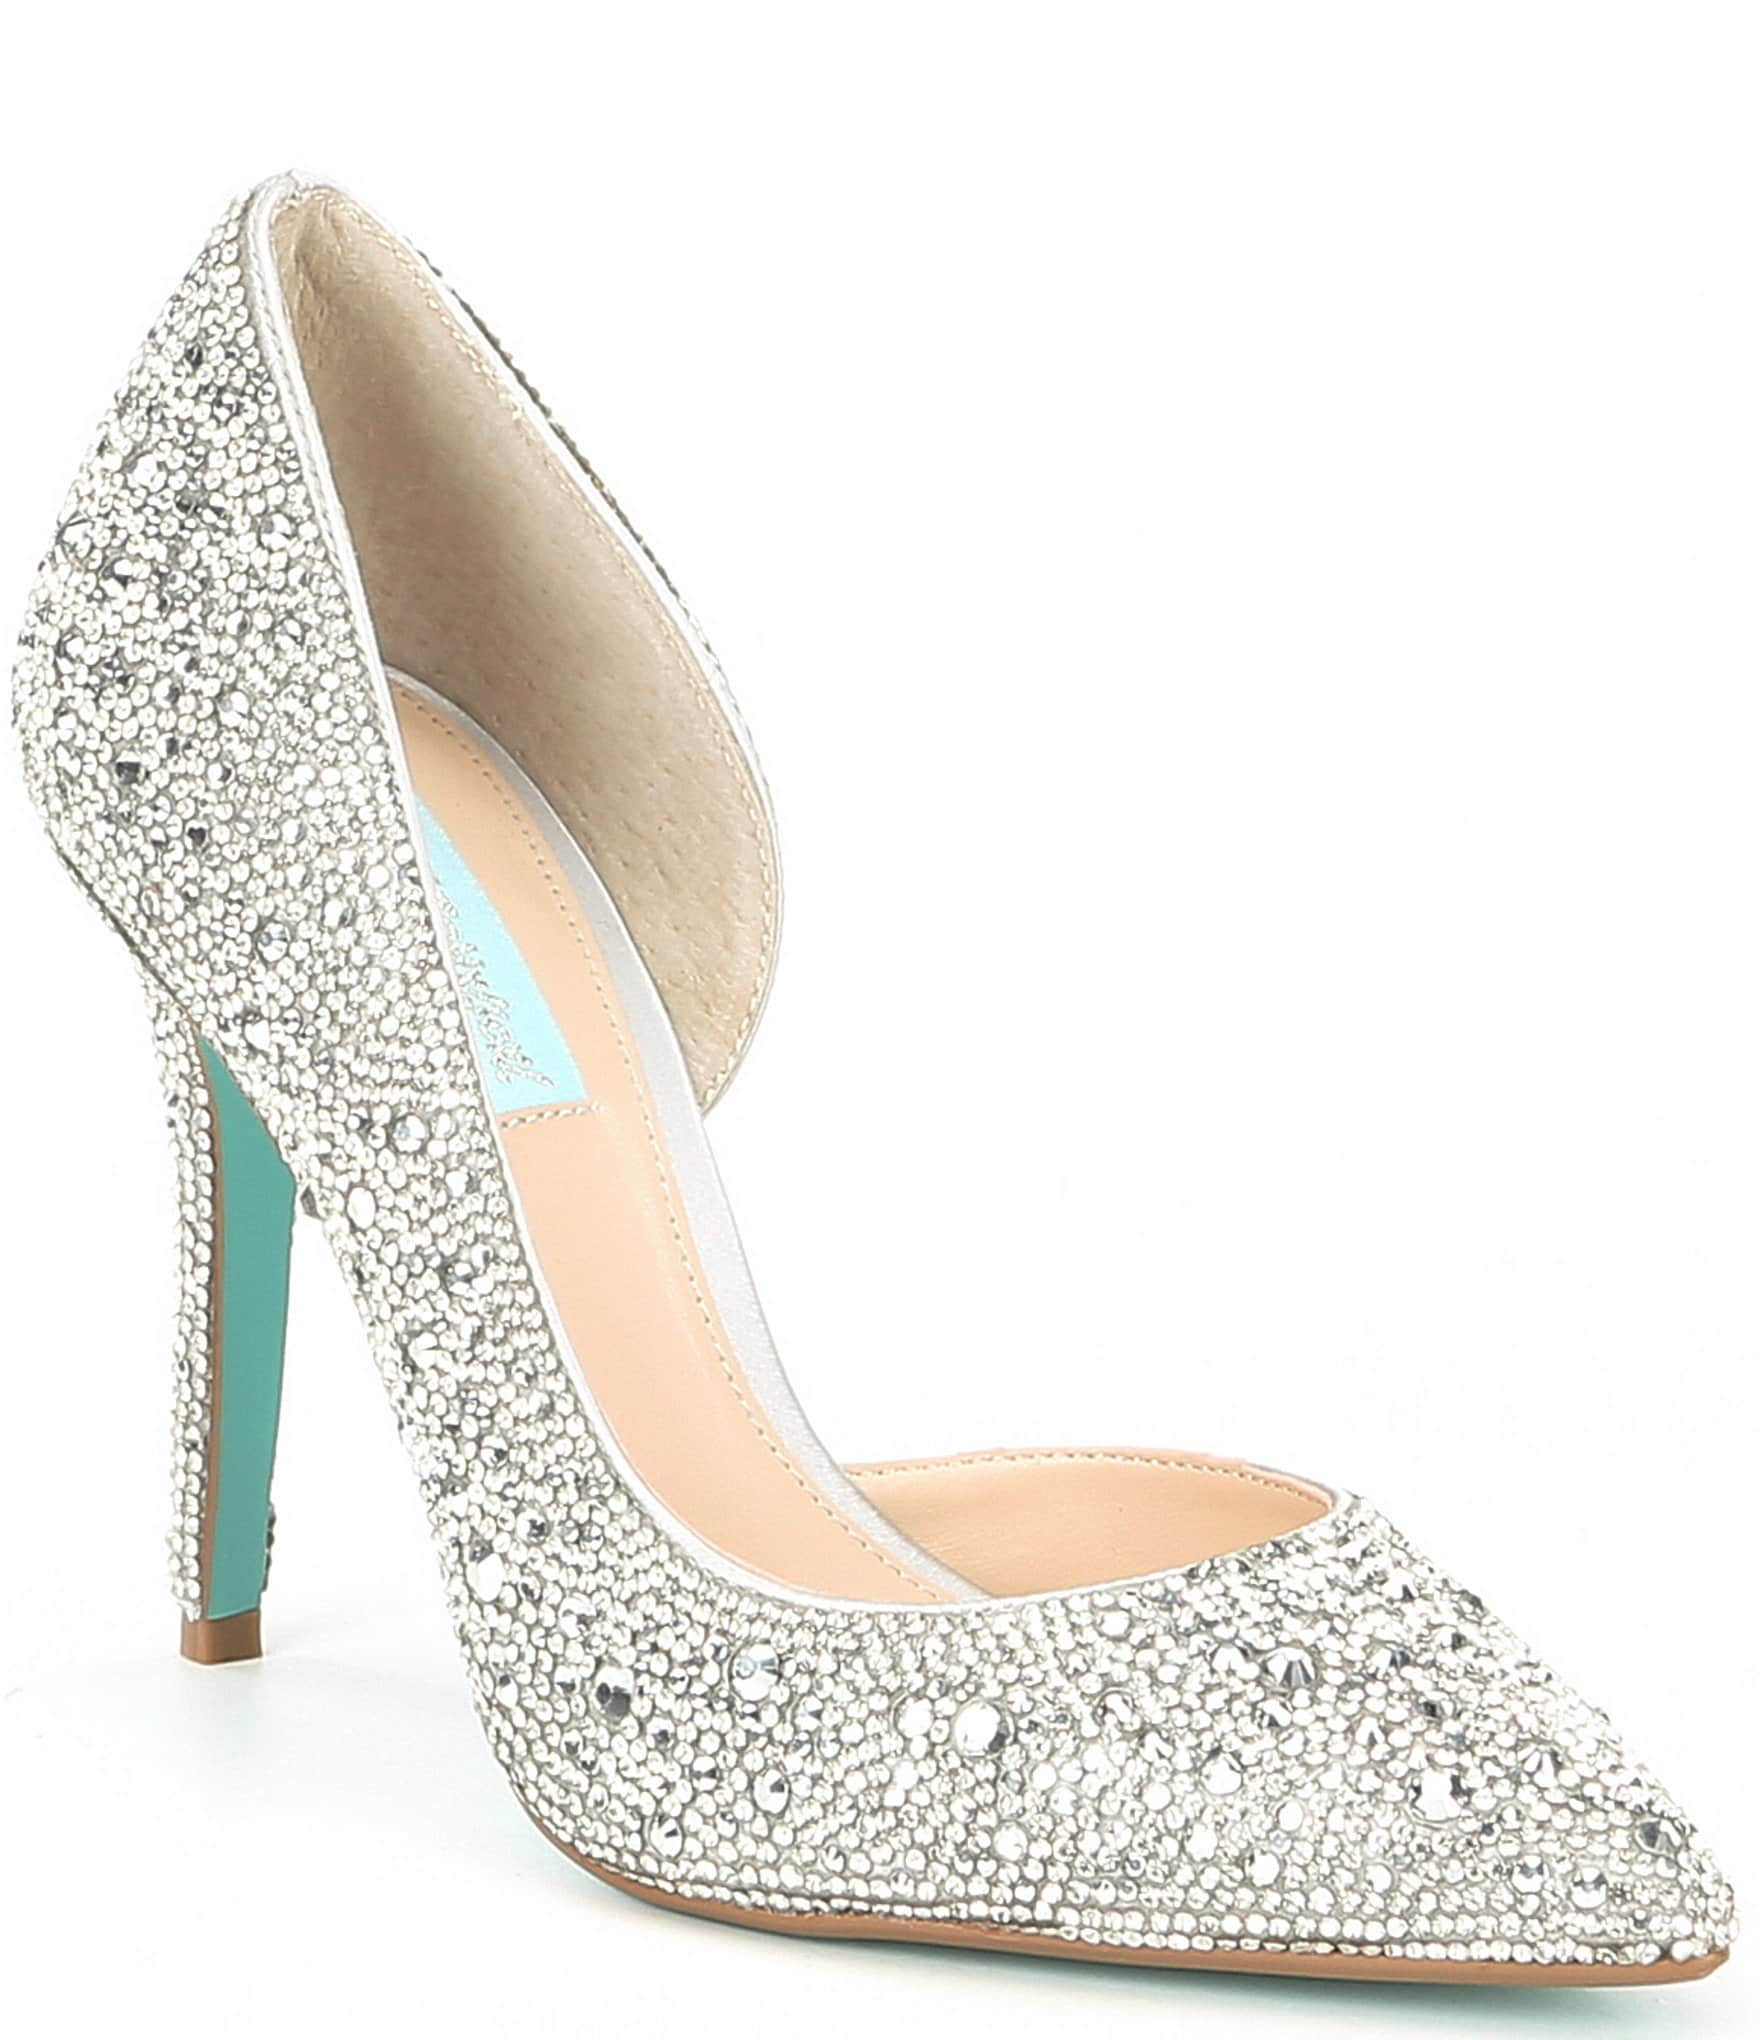 3f6c3666ea0d75 Silver Women s Pumps